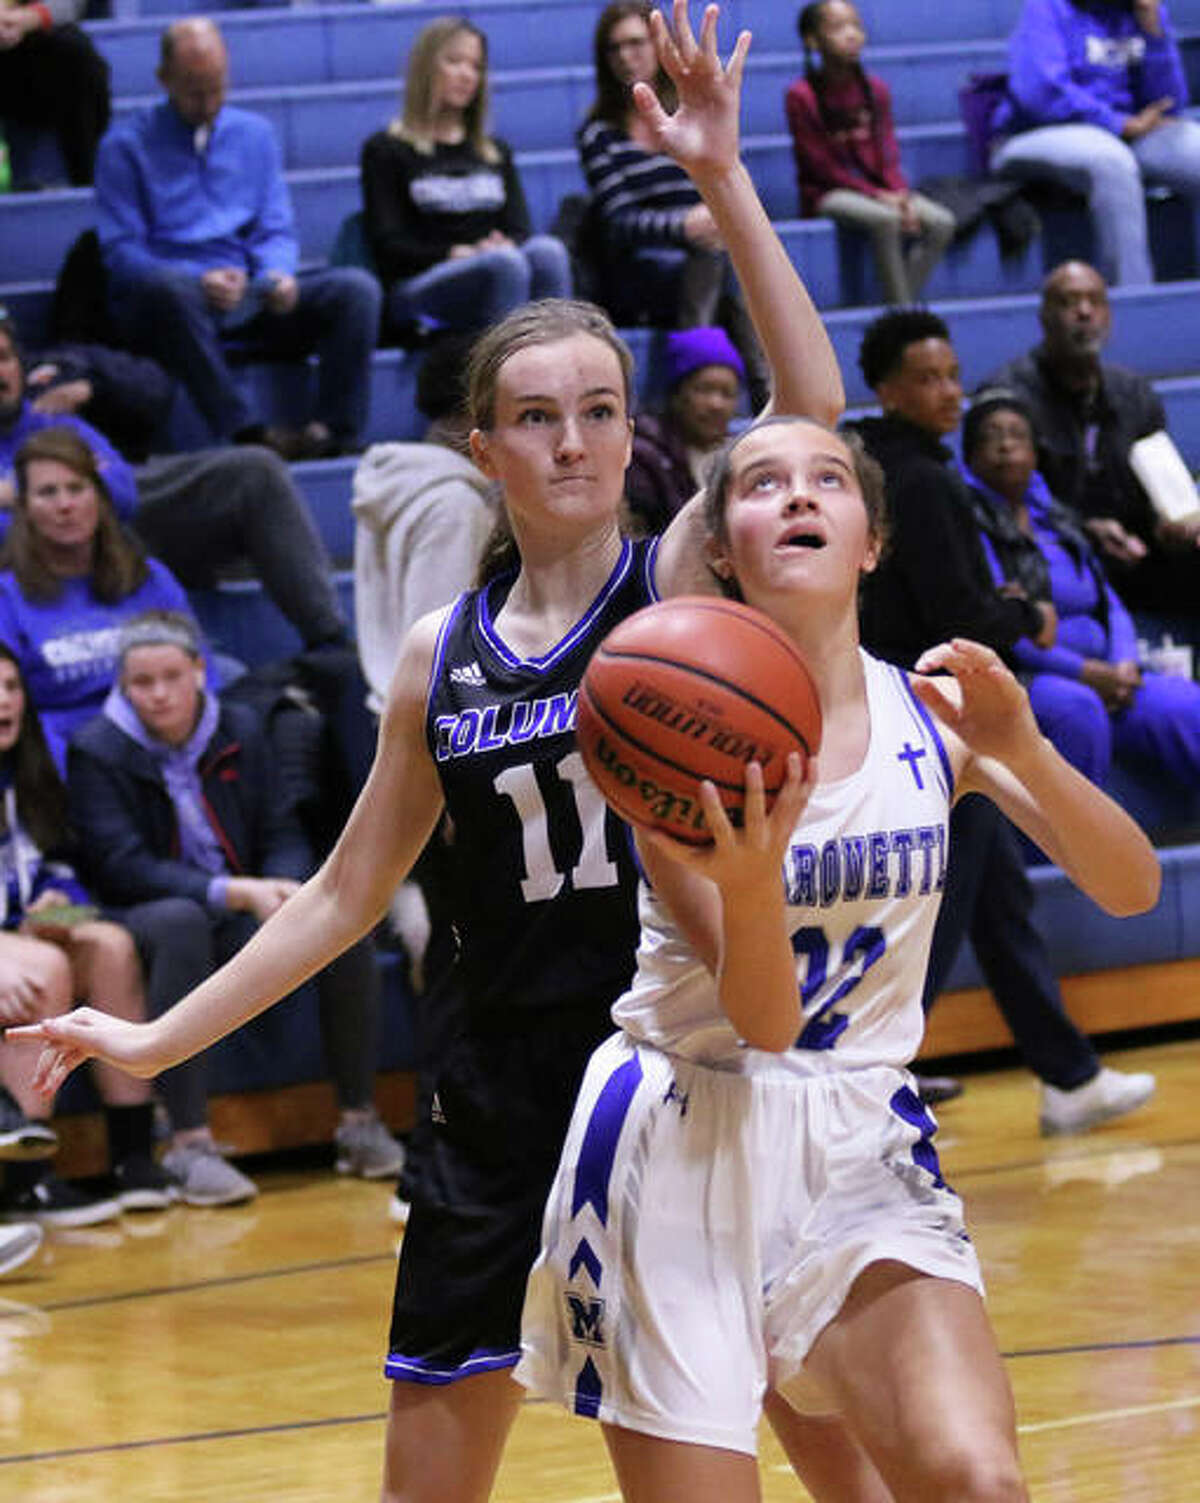 Marquette Catholic's Jillian Nelson scores on a reverse layup after getting past Columbia's Avrie Barthel (11) in a Dec. 23 game in Columbia. Marquette is 23-6 and goes to the Gillespie Class 2A Regional.